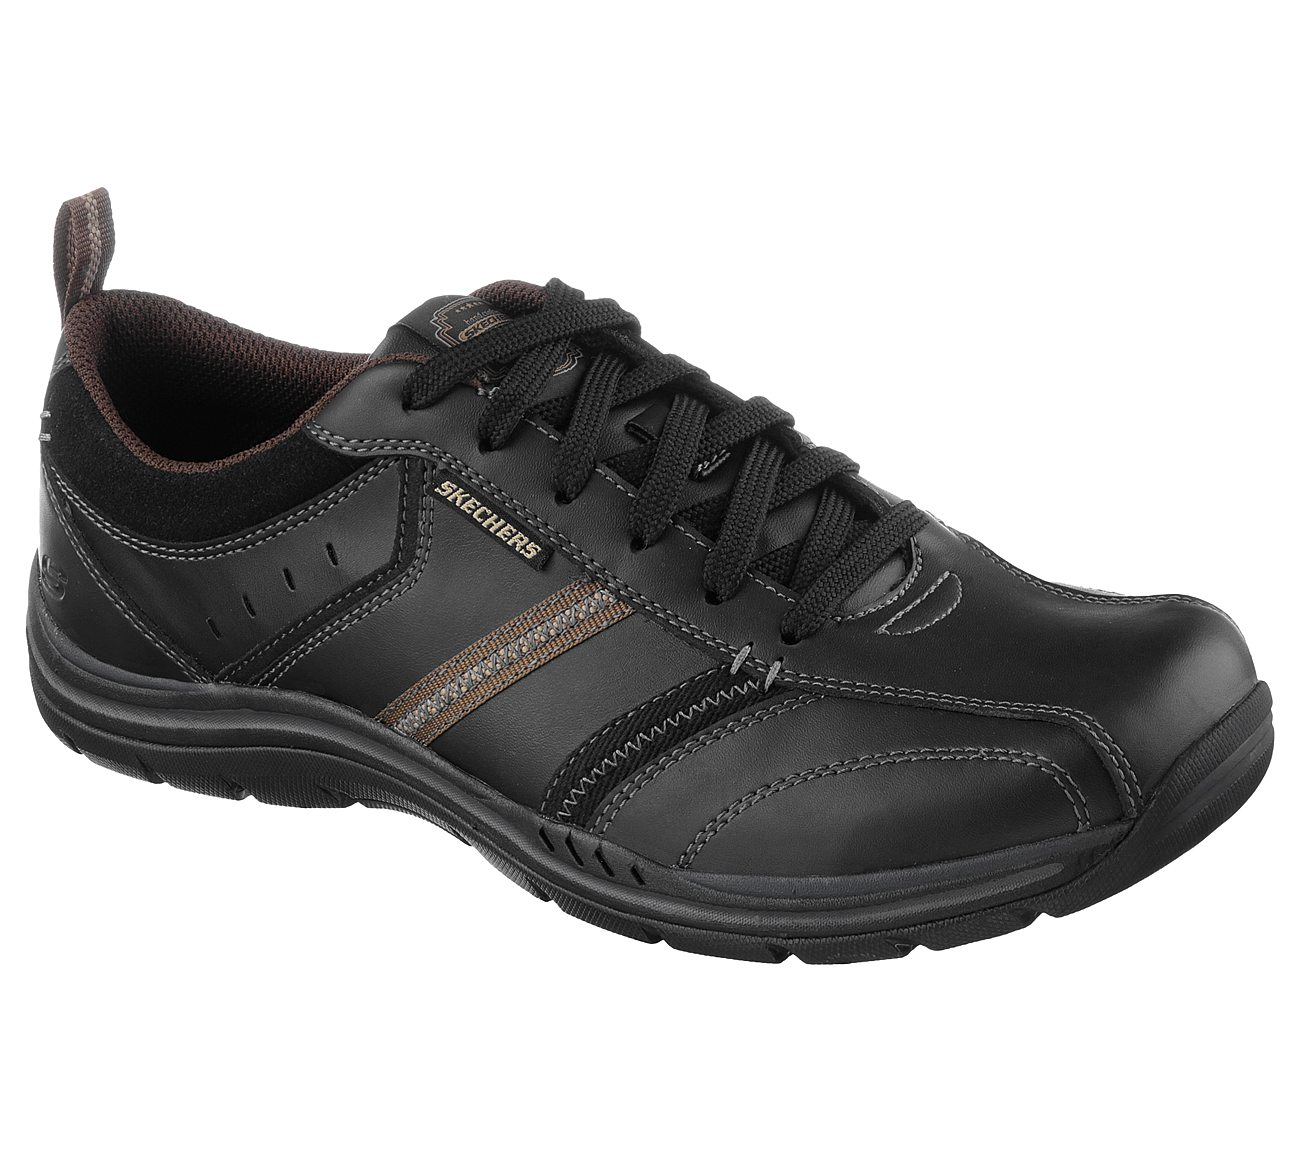 cfb850ff55f5 Buy SKECHERS Relaxed Fit  Expected - Devention SKECHERS Modern ...